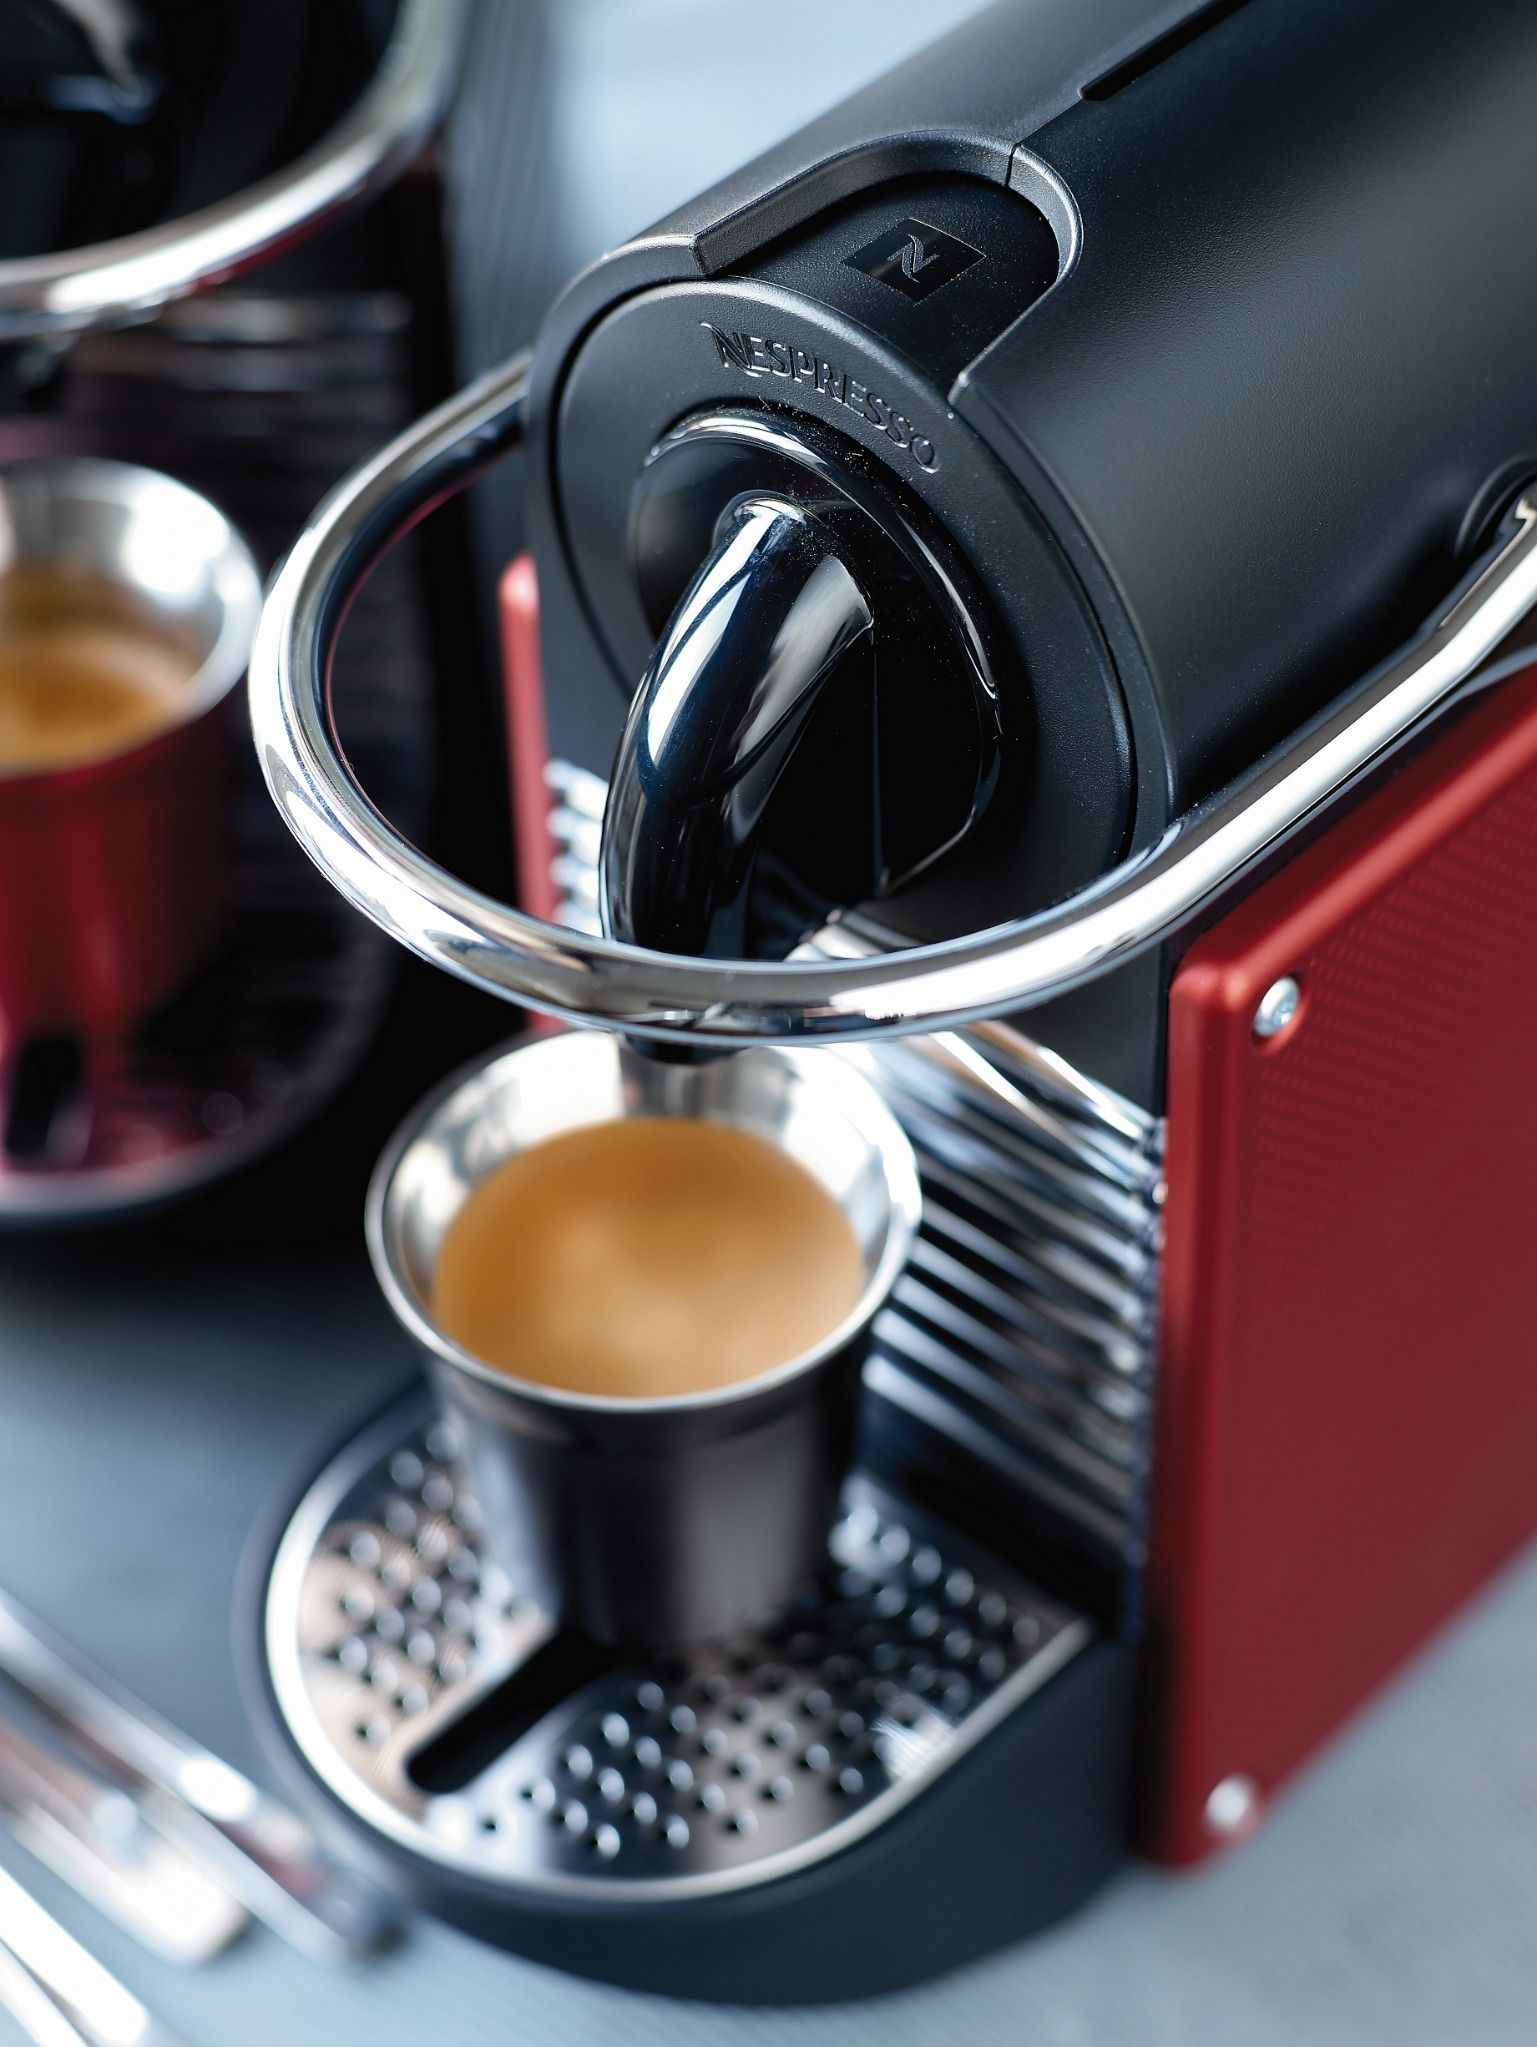 Nespresso Pixie Carmine One of our fastest single cup